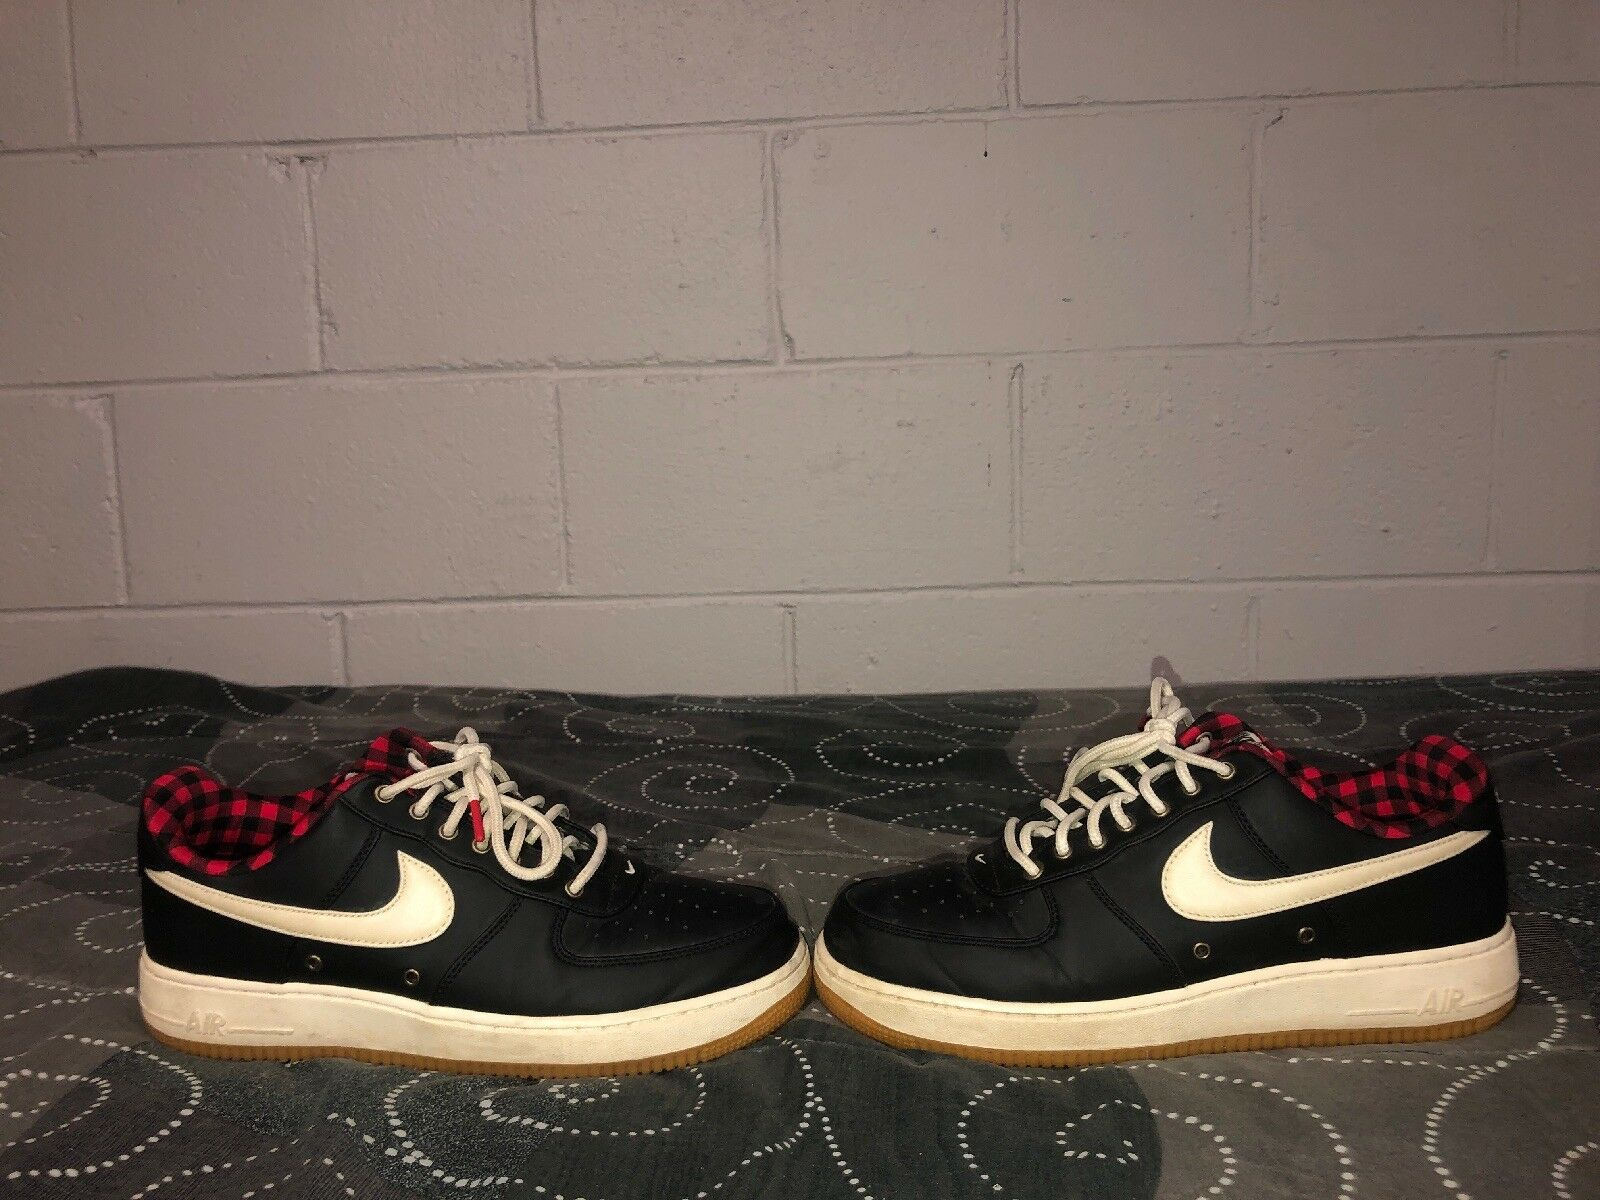 5ecda8e848 Nike Air Force 1 Low Lumberjack Pack Mens Athletic shoes Size 10.5 ...